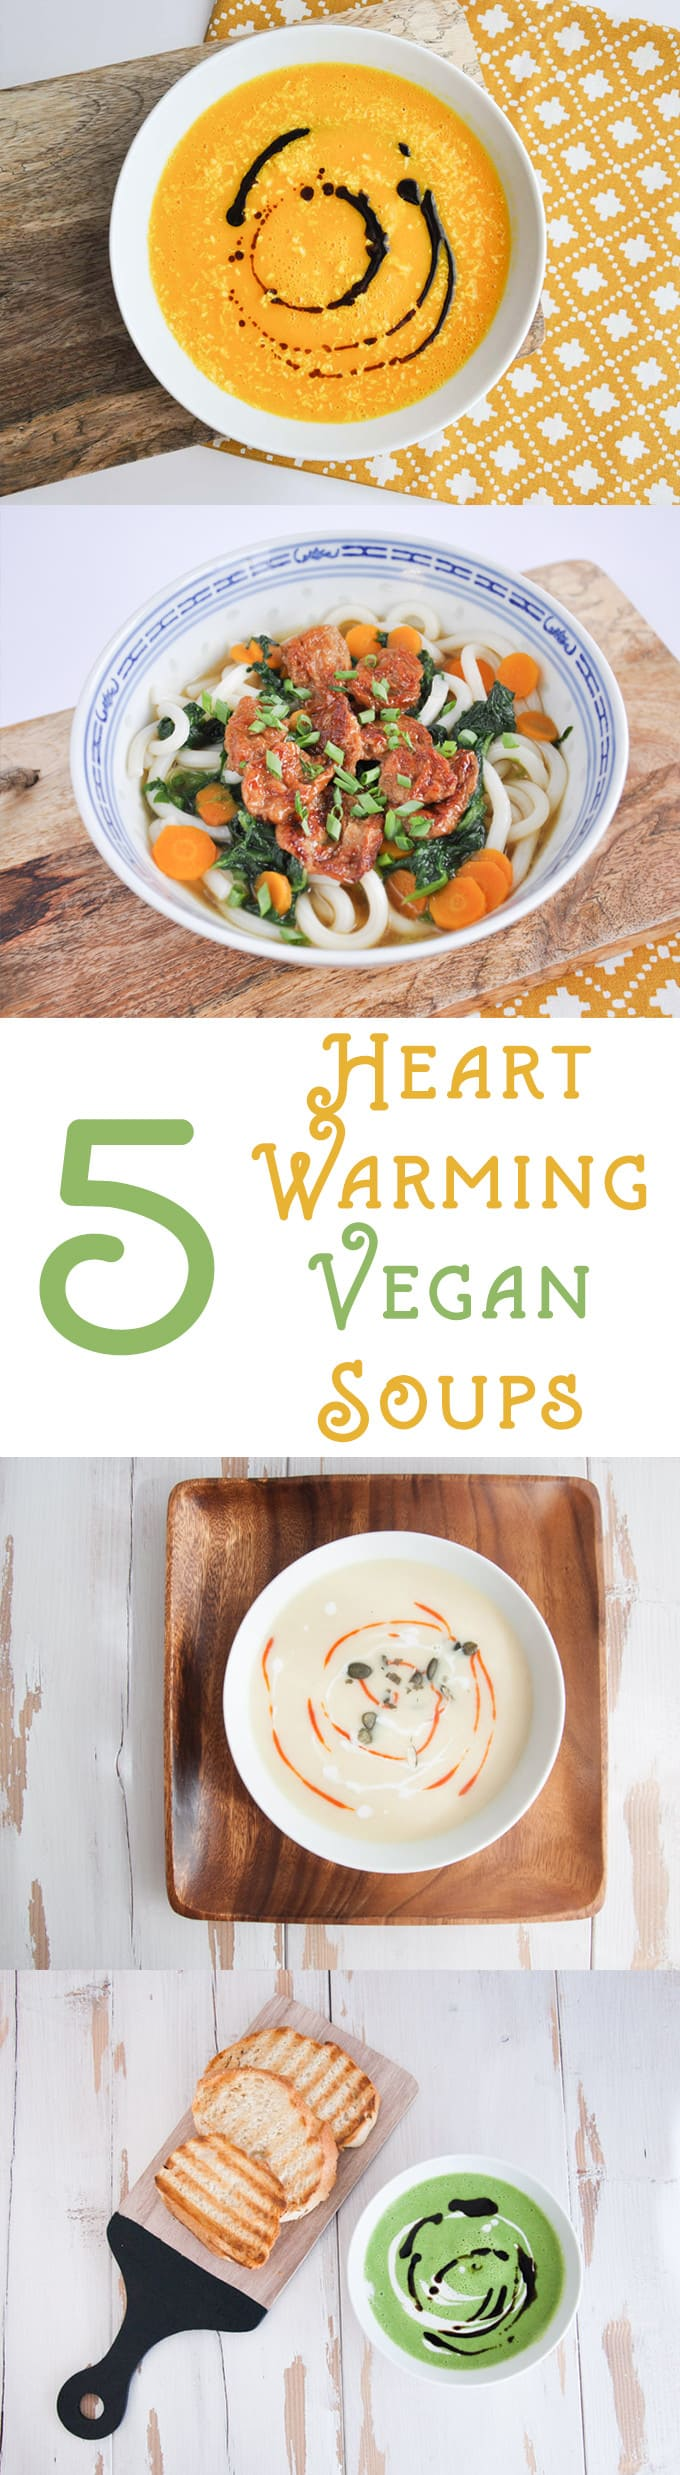 5 Heart-Warming Vegan Soups | ElephantasticVegan.com